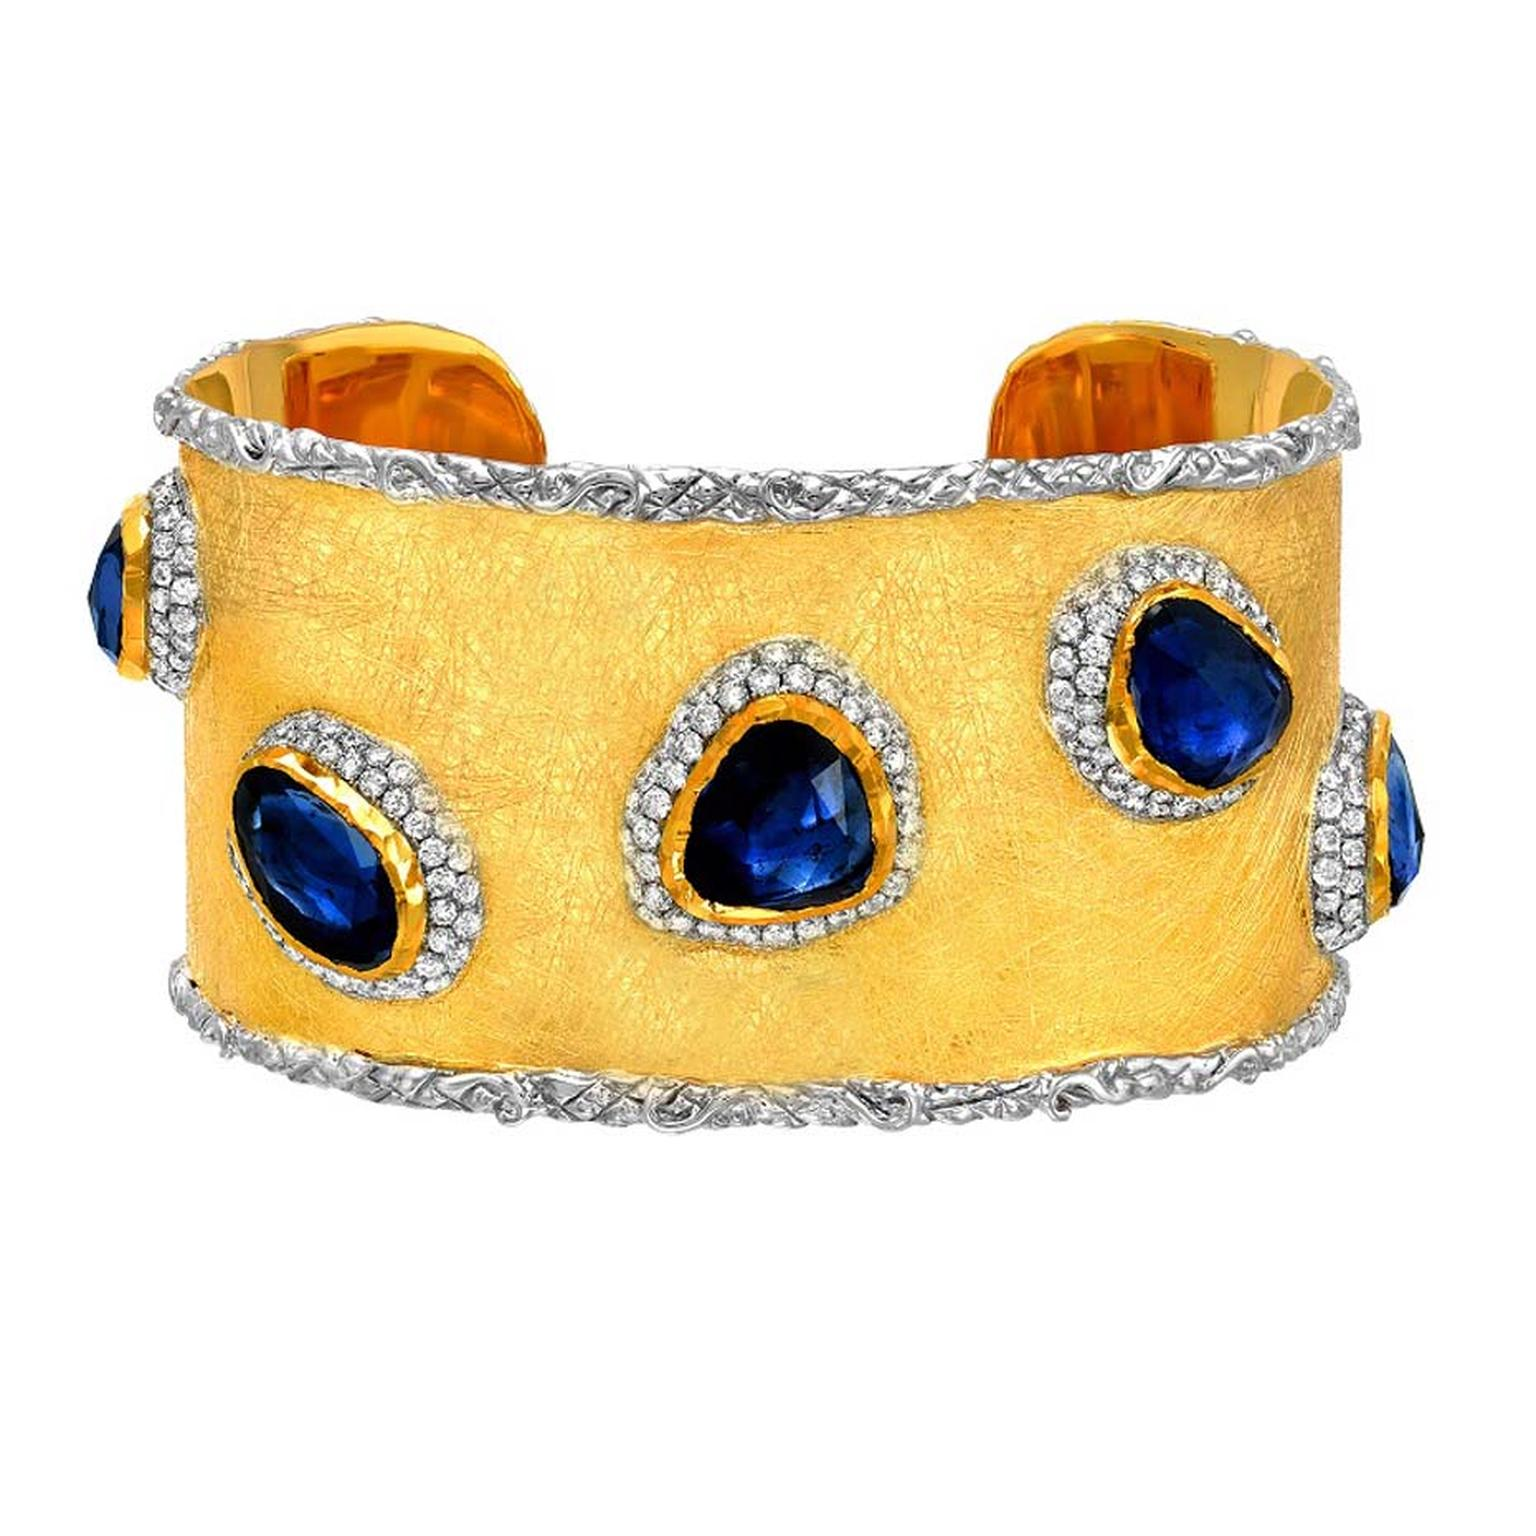 Victor Velyan gold bracelet with 15.43ct blue sapphires and diamonds.